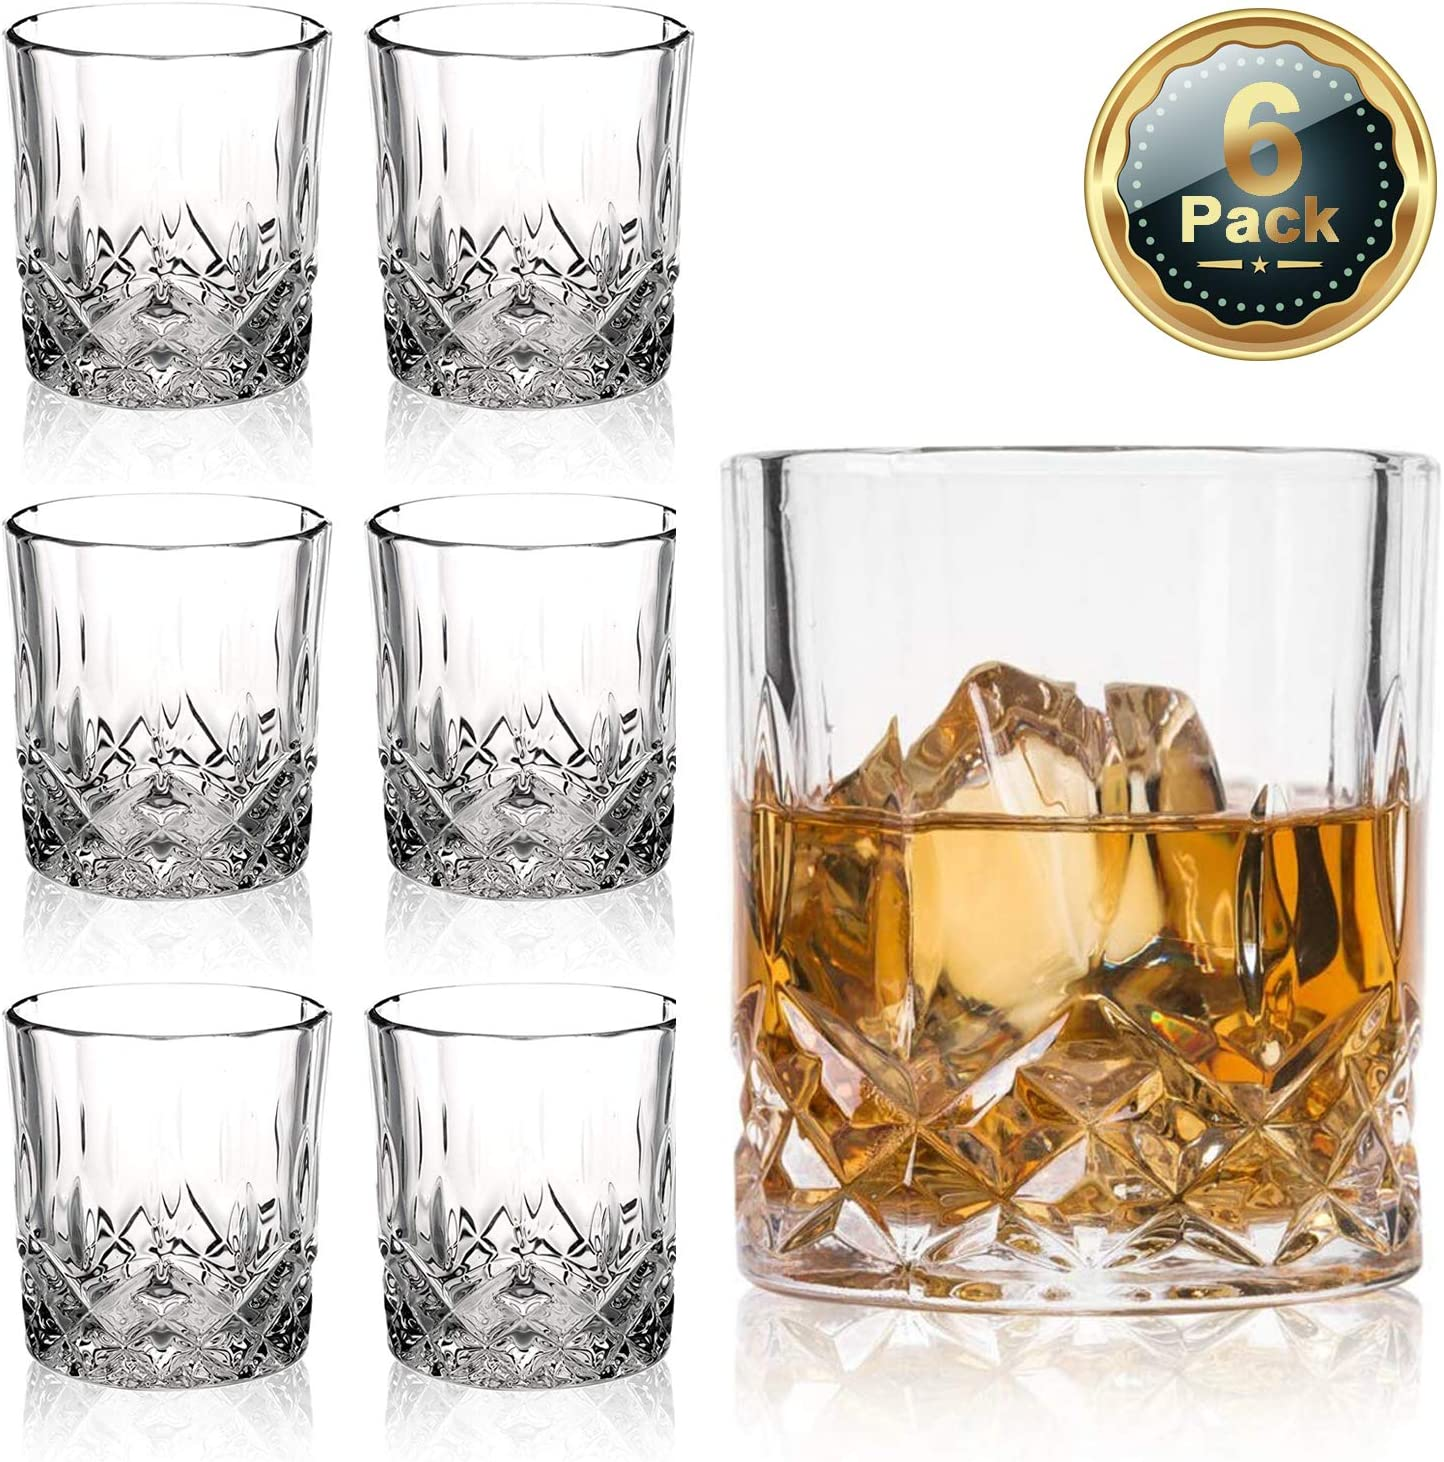 Farielyn-X Crystal Old Fashioned Whiskey Glasses (Set of 6), 11 Oz Unique Bourbon Glass, Ultra-Clarity Double Old Fashioned Liquor Vodka Bourbon Cocktail Scotch Tumbler Bar Glasses Set